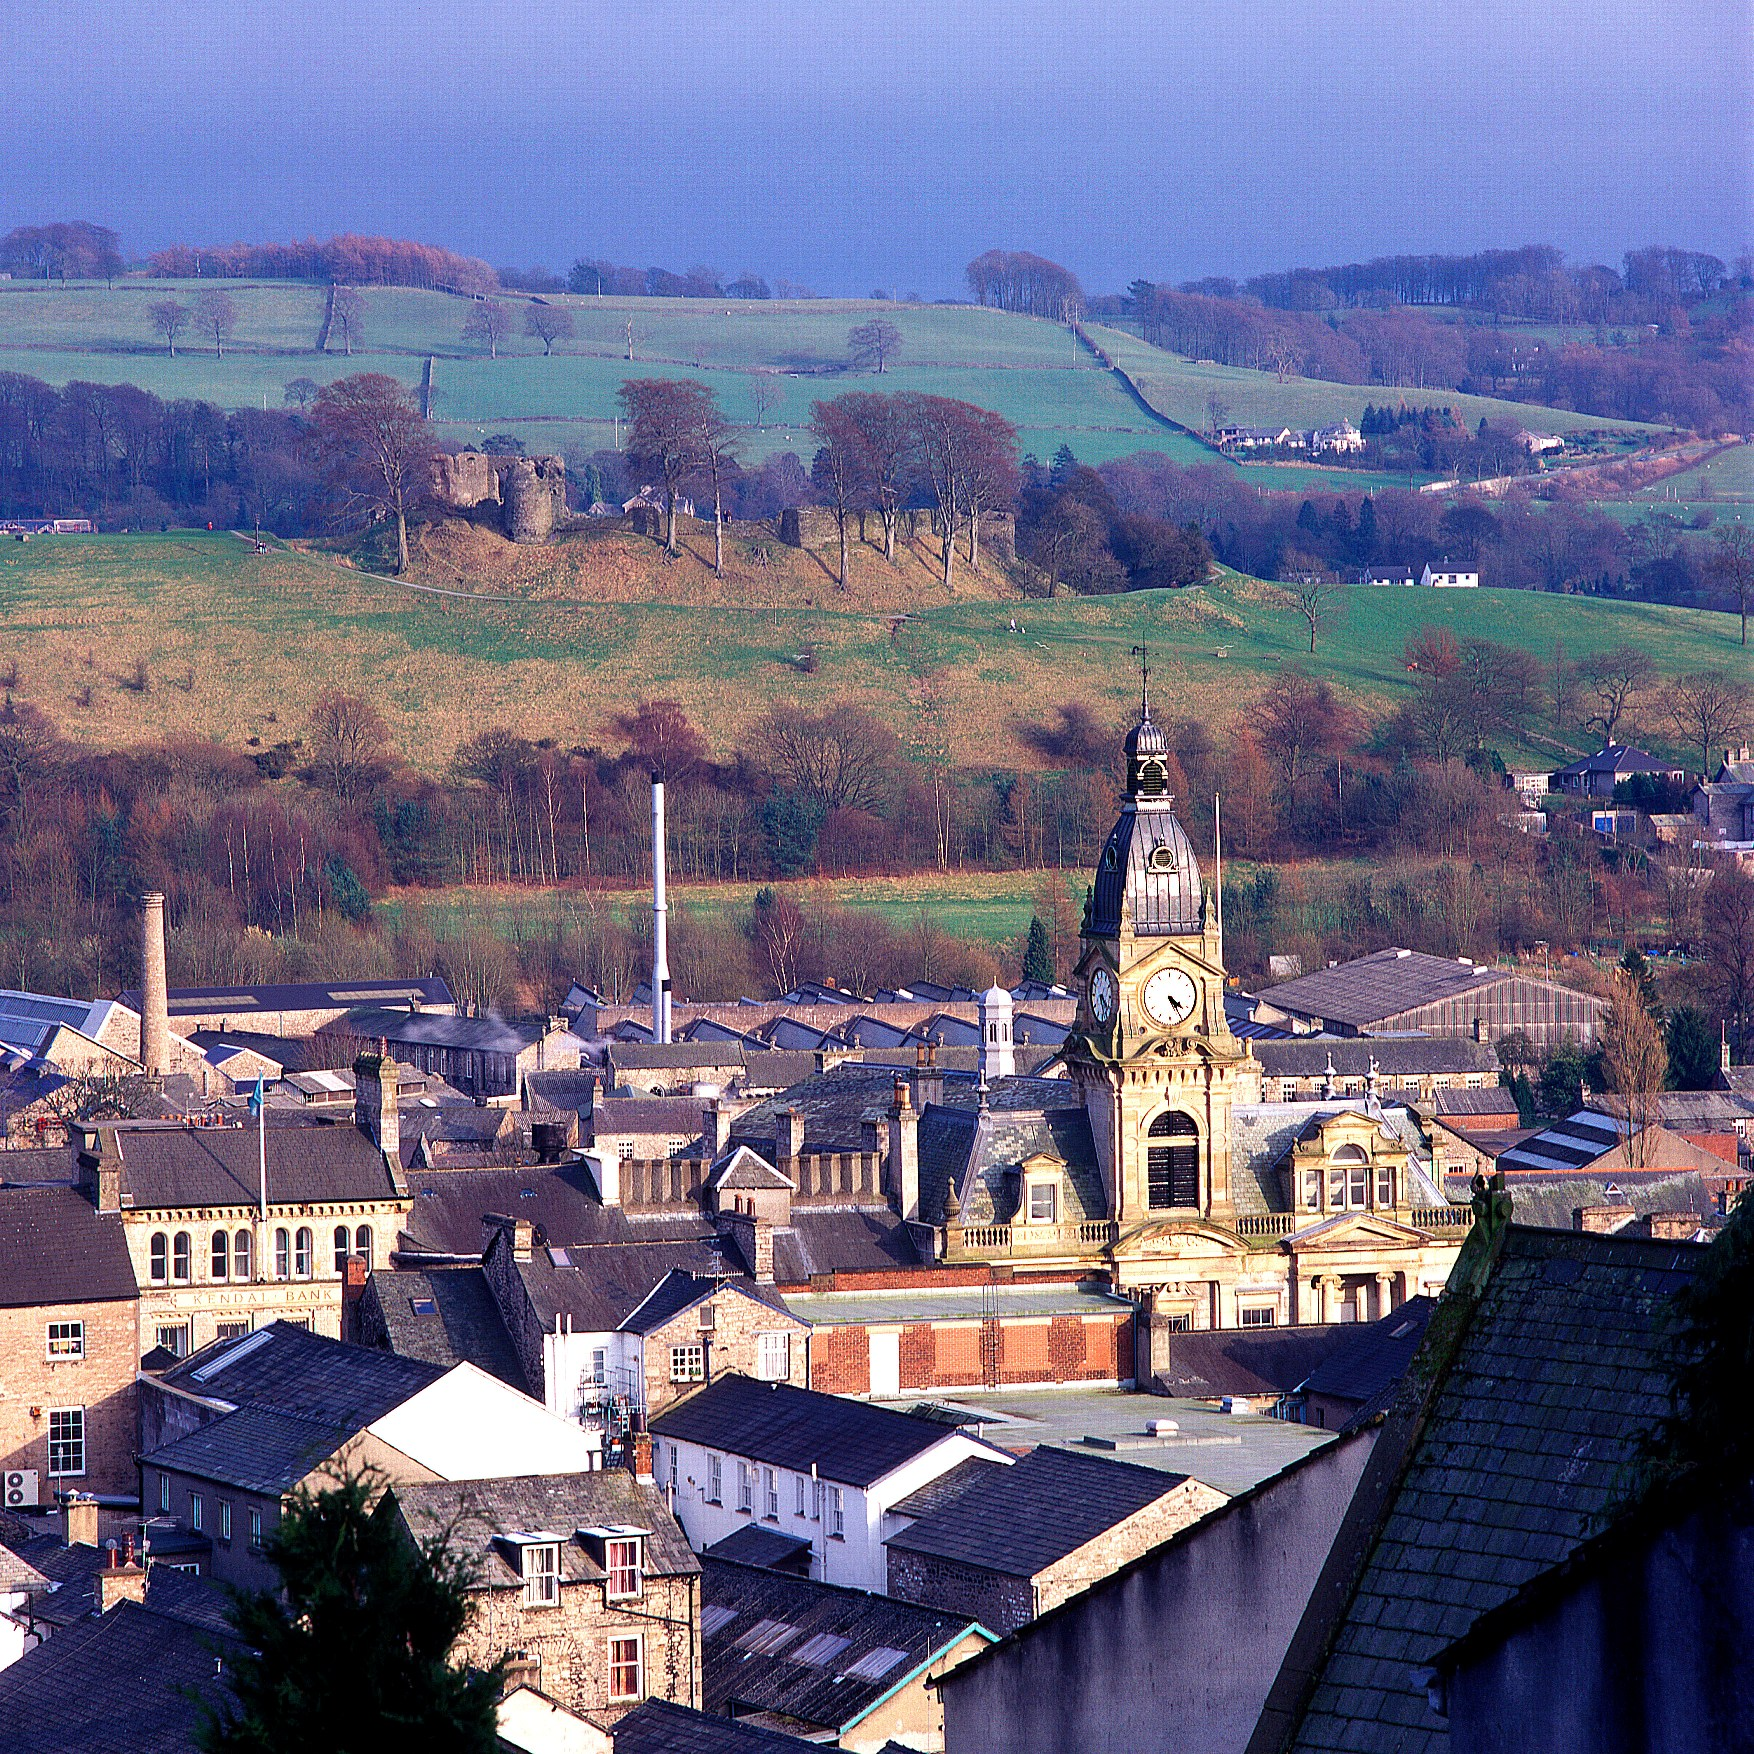 A view across the roof tops of kendal with the castle in the background © www.golakes.co.uk